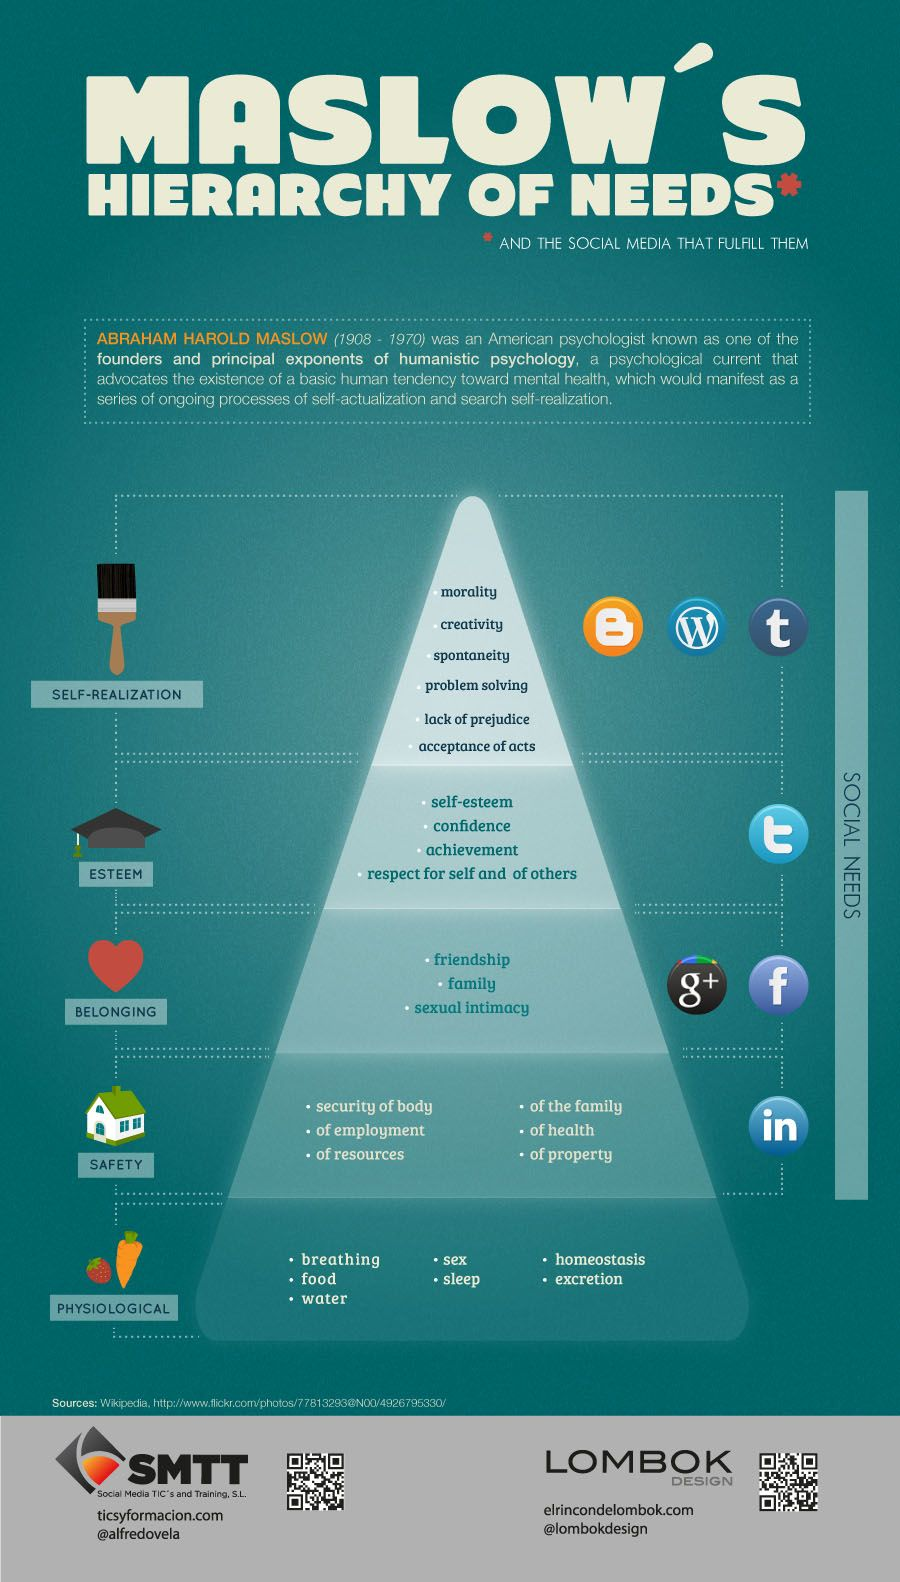 Twitter, Facebook, LinkedIn And The Hierarchy Of Needs [INFOGRAPHIC ...